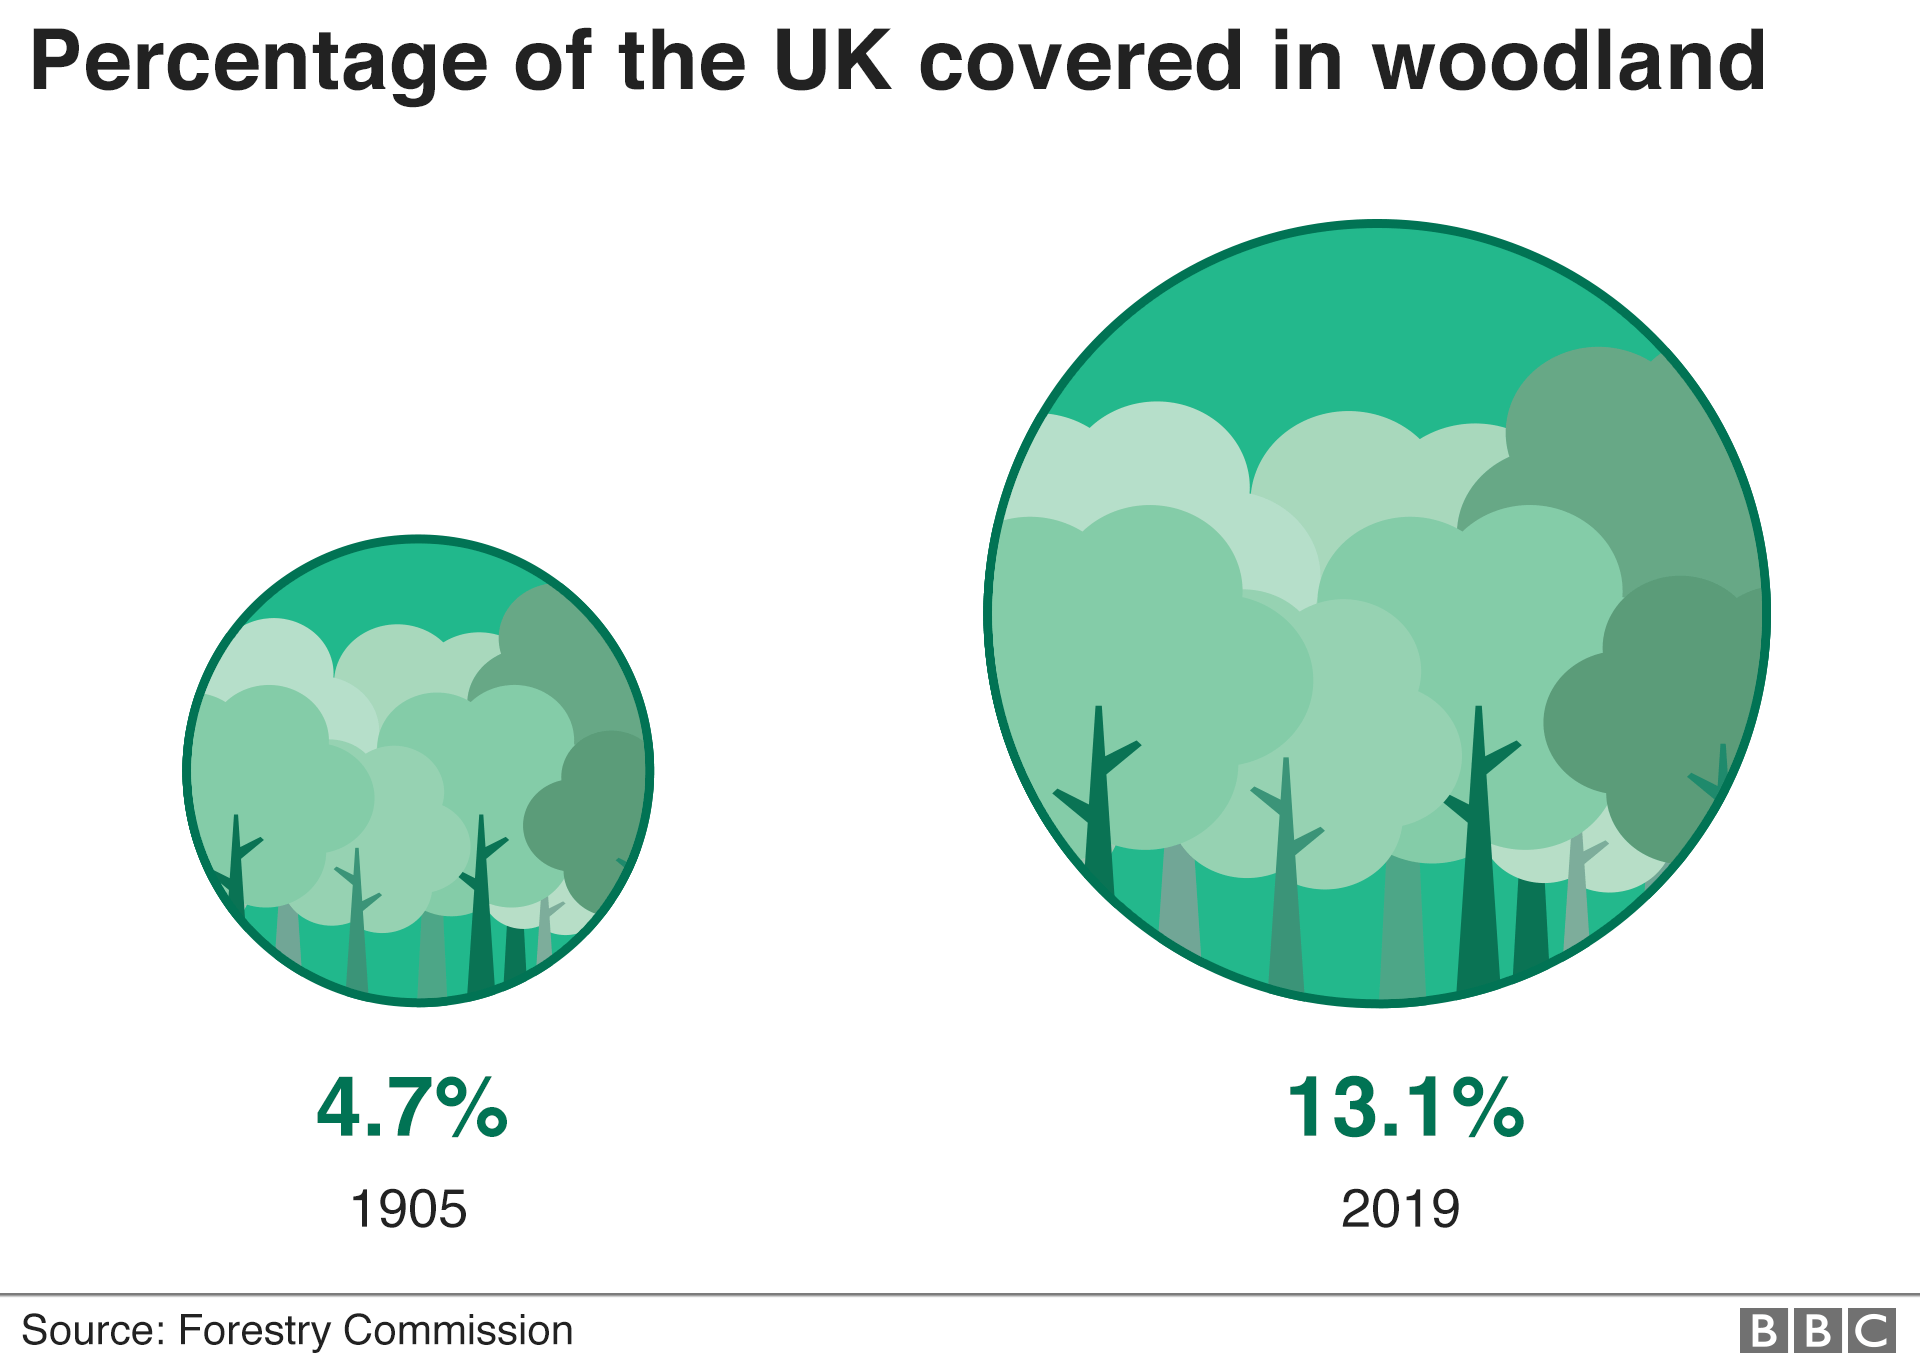 Charts showing percentrage of the UK covered in woodland